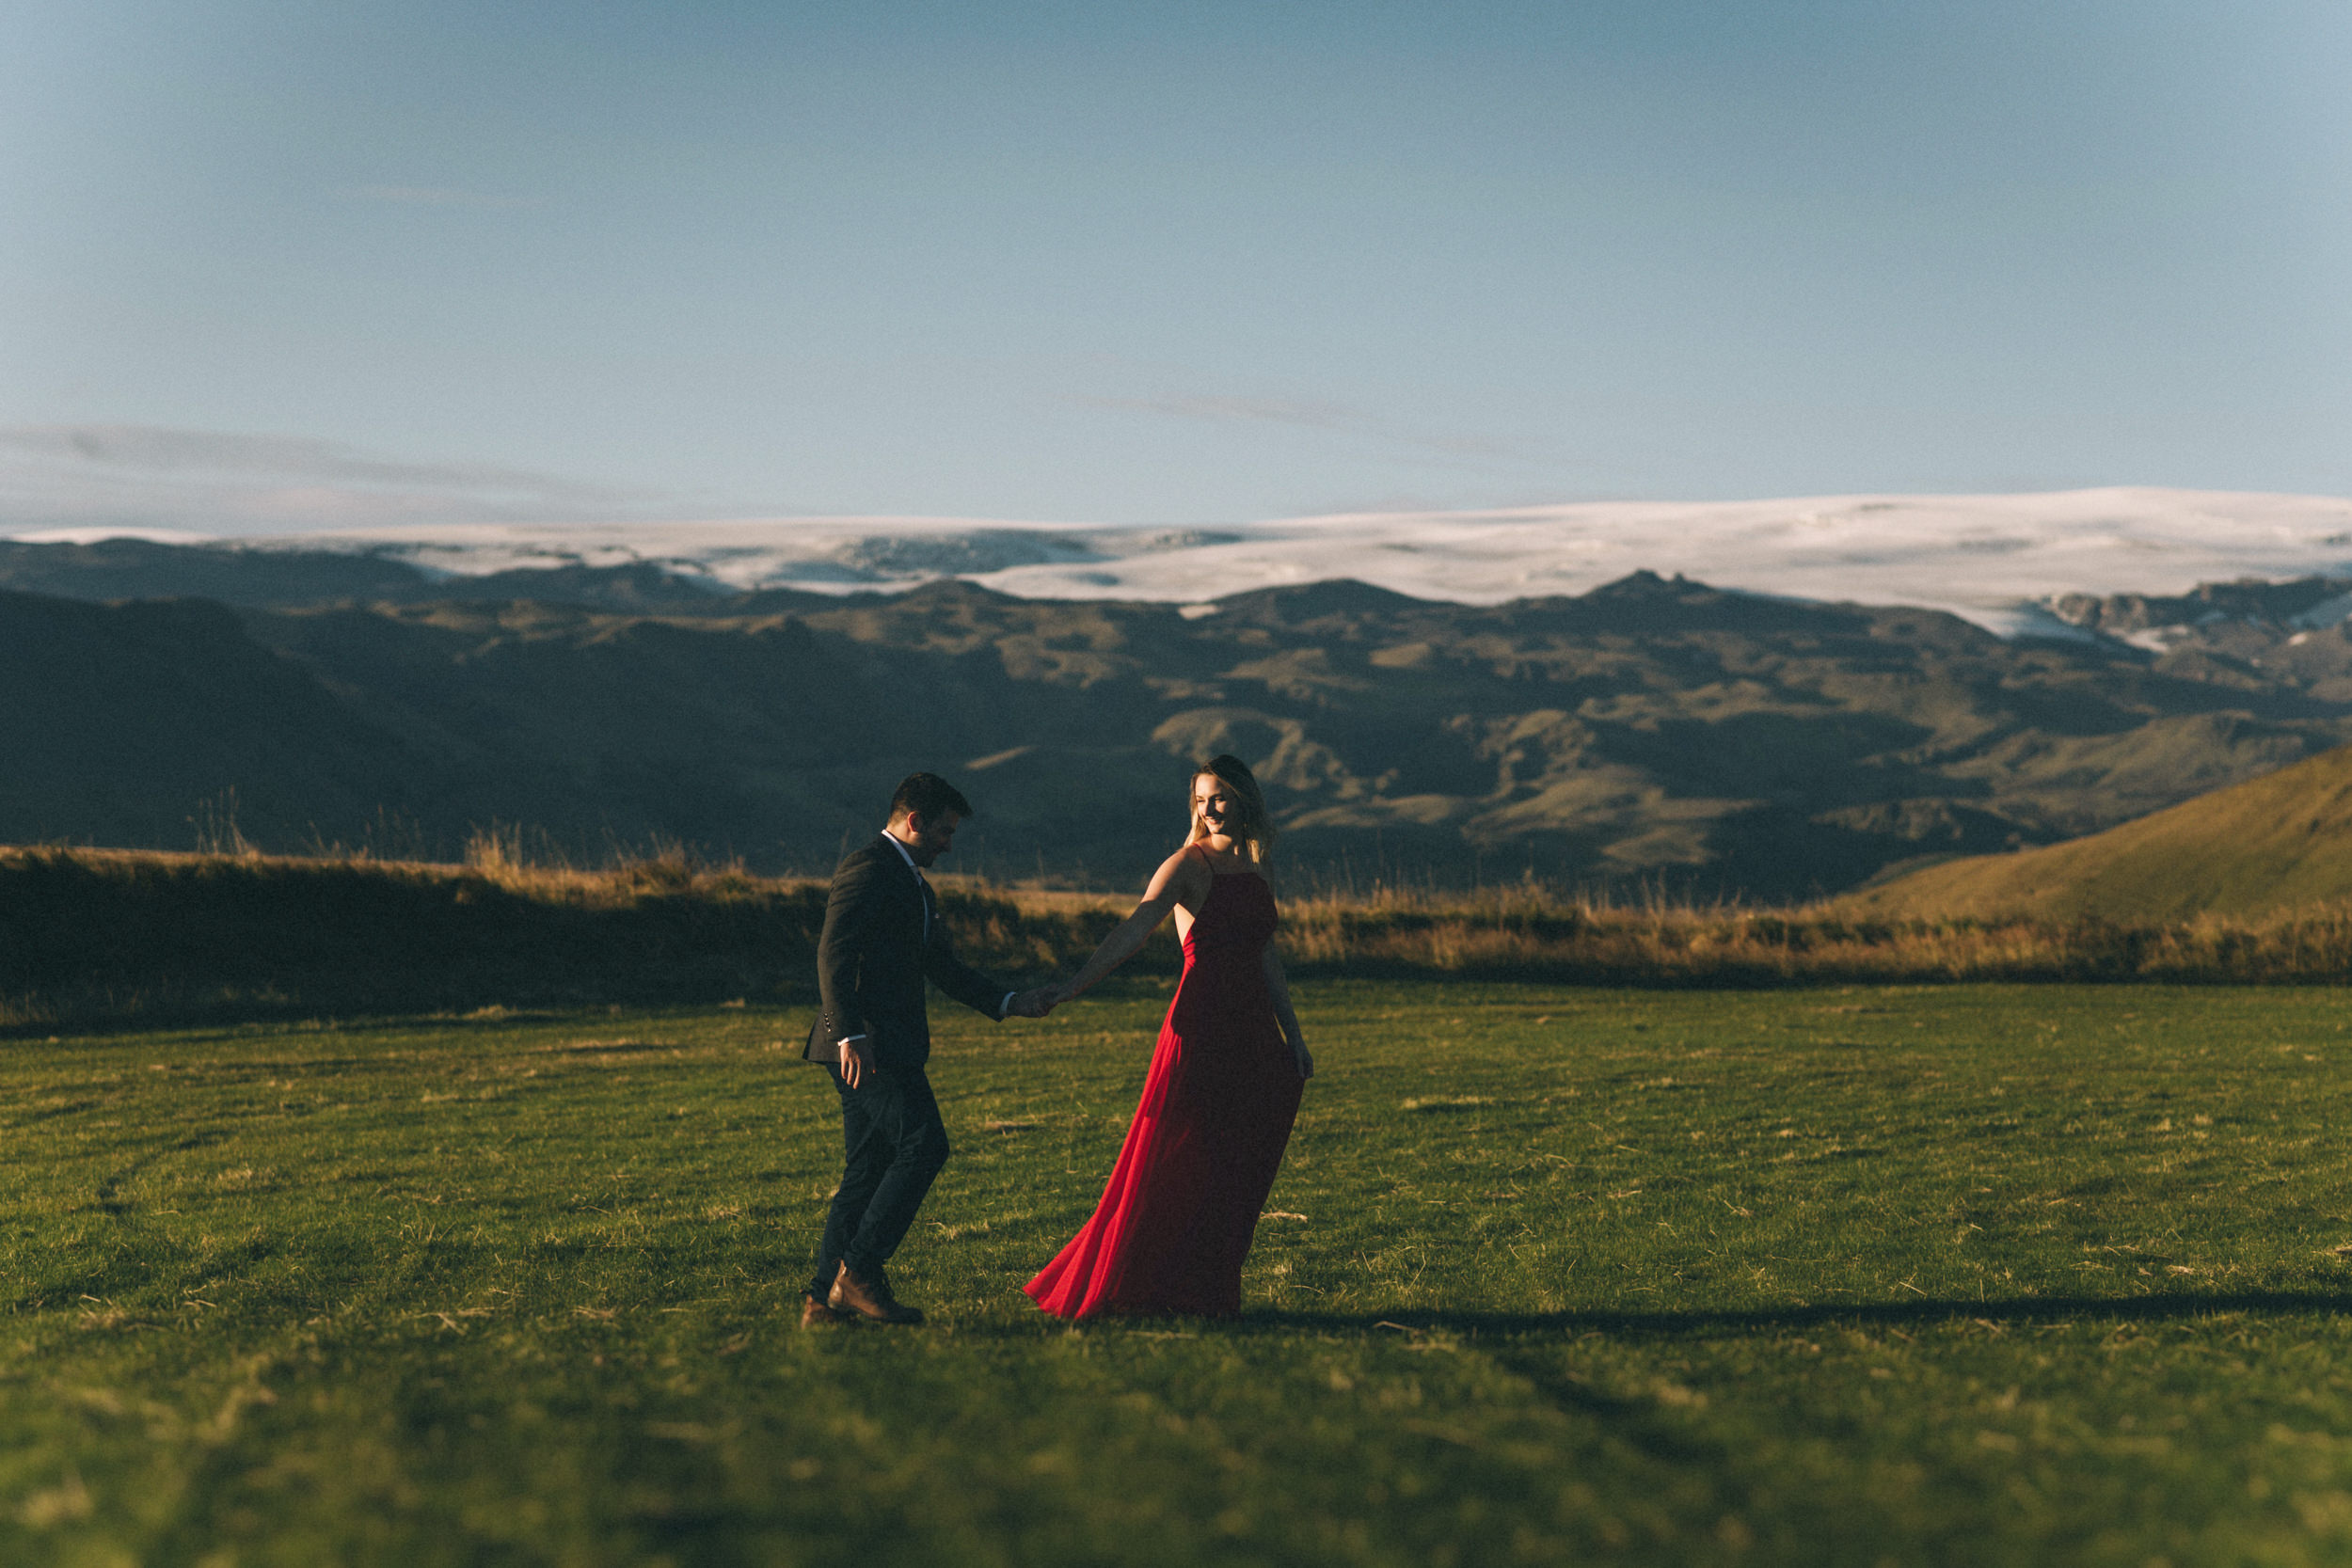 Sarah-Katherine-Davis-Photography-Iceland-Adventure-Elopement-Photographer-Louisville-Kentucky-Wedding-Photographer-Travel-Vik-Beach-Engagement-Session-Red-Dress-Reynisfjara-253edit.jpg